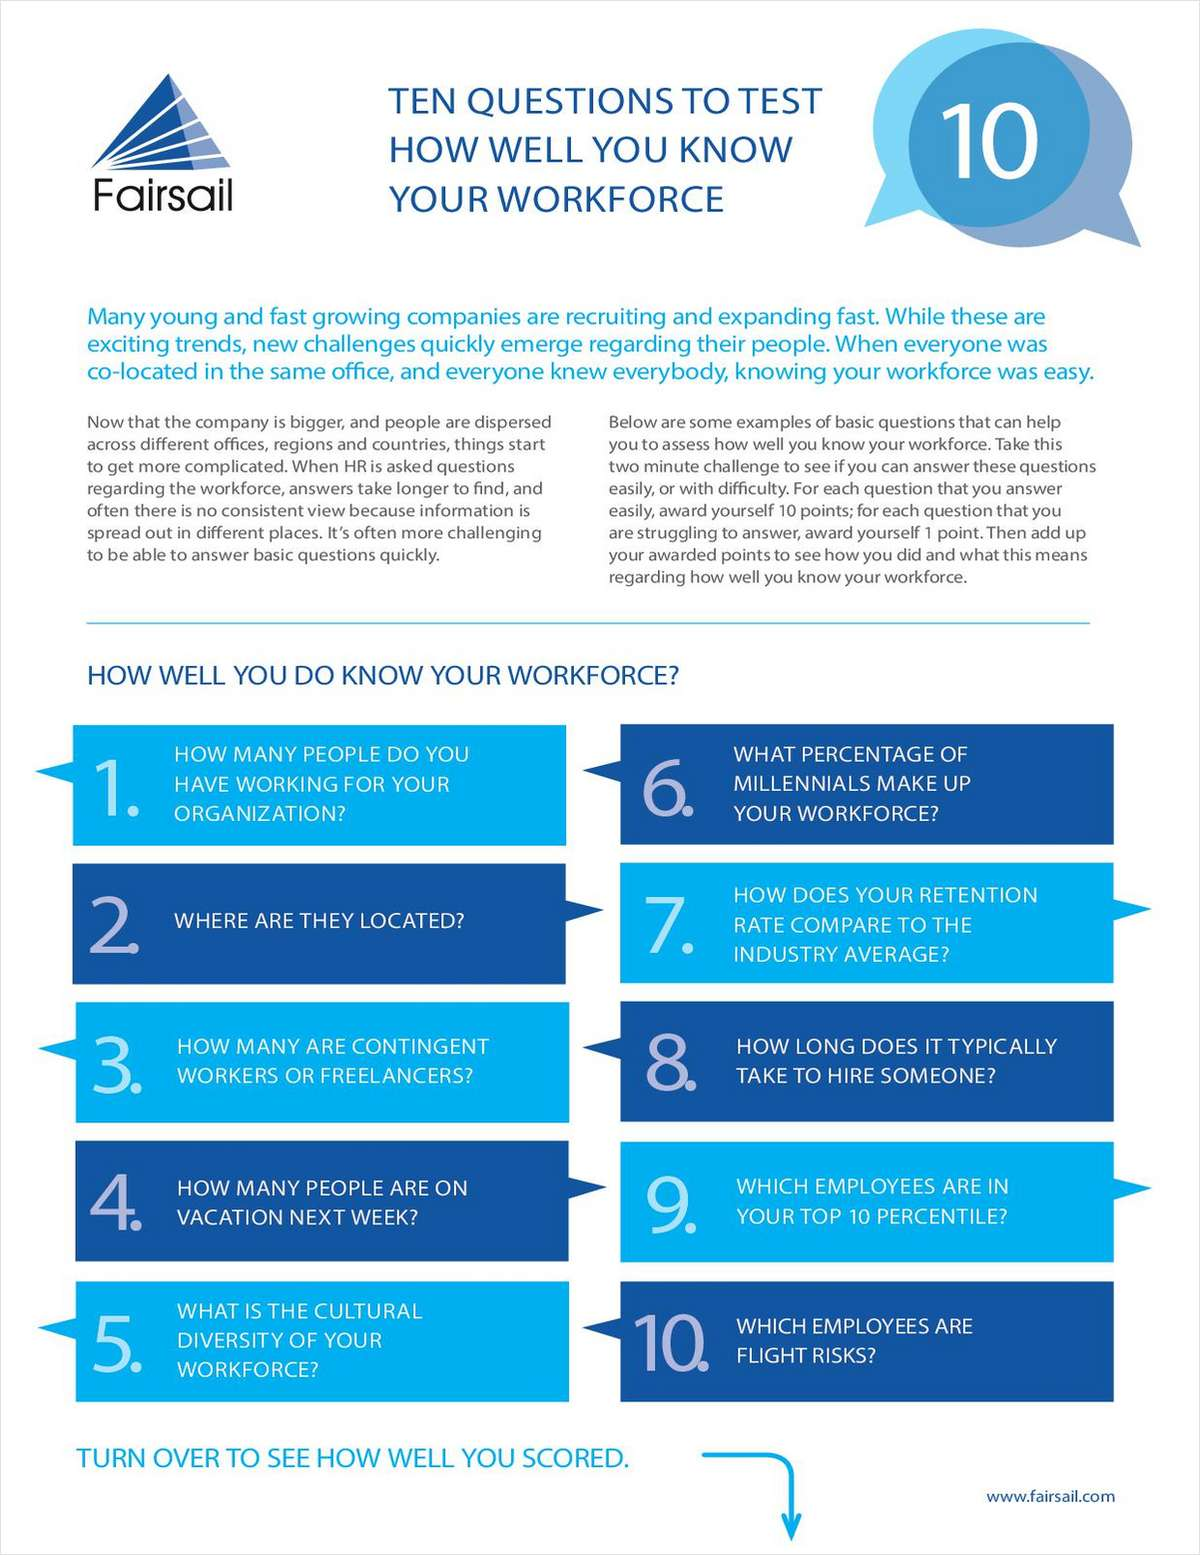 How Well Do You Know Your Workforce?